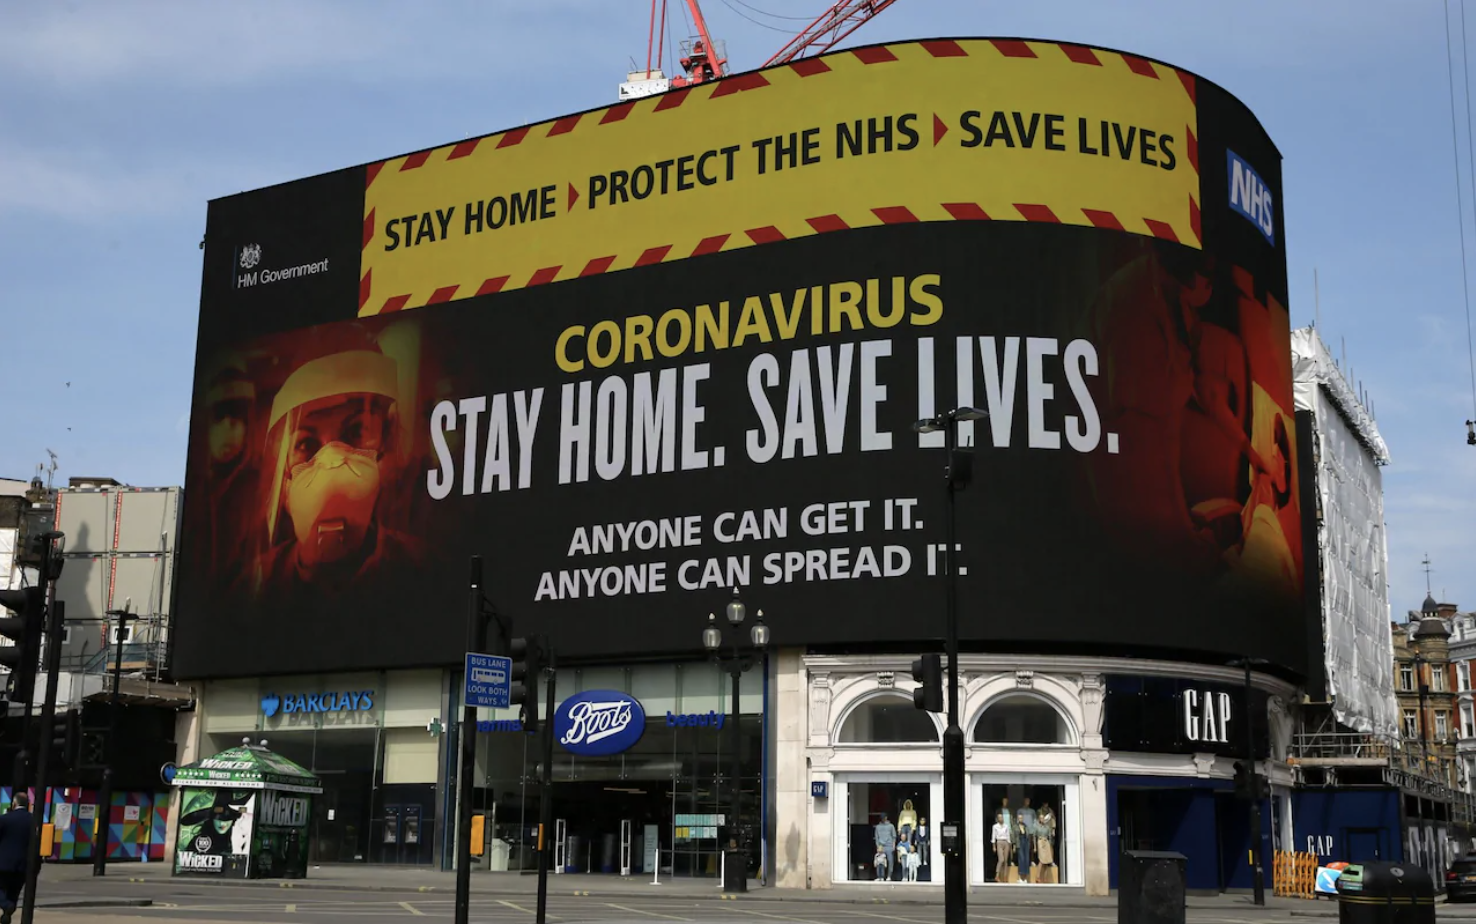 Coronavirus government poster